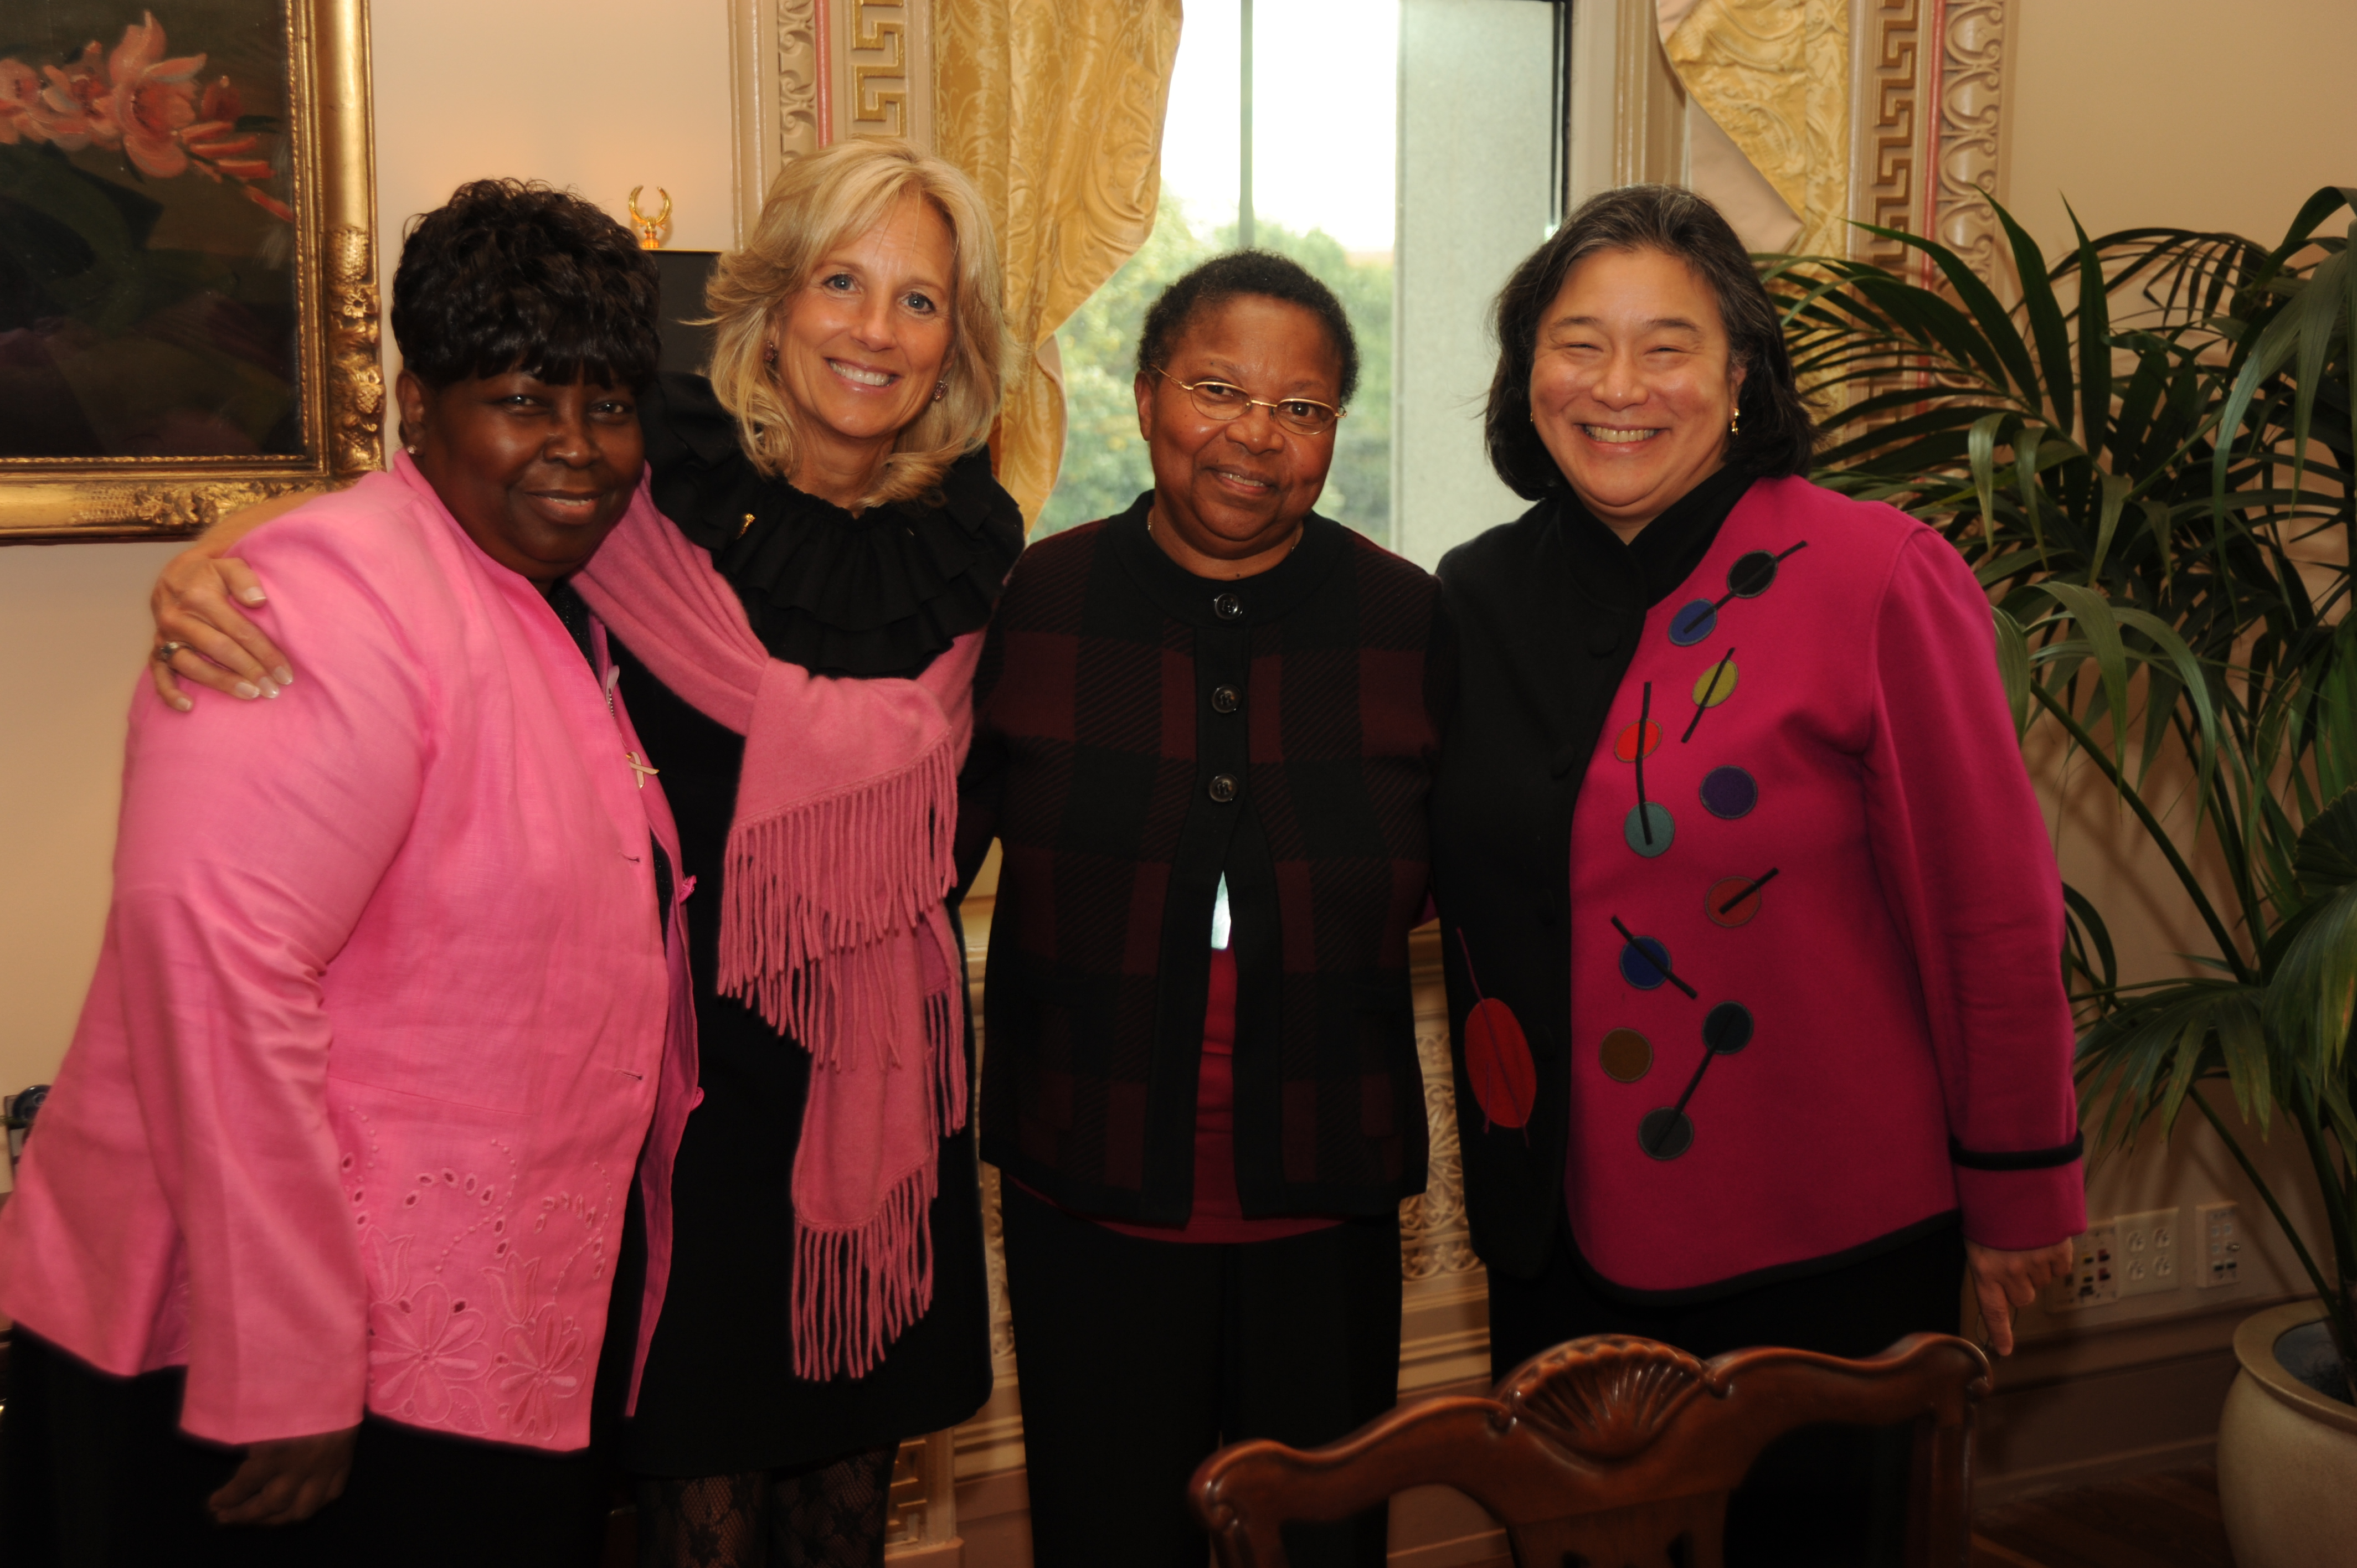 Dr. Biden Breast Cancer